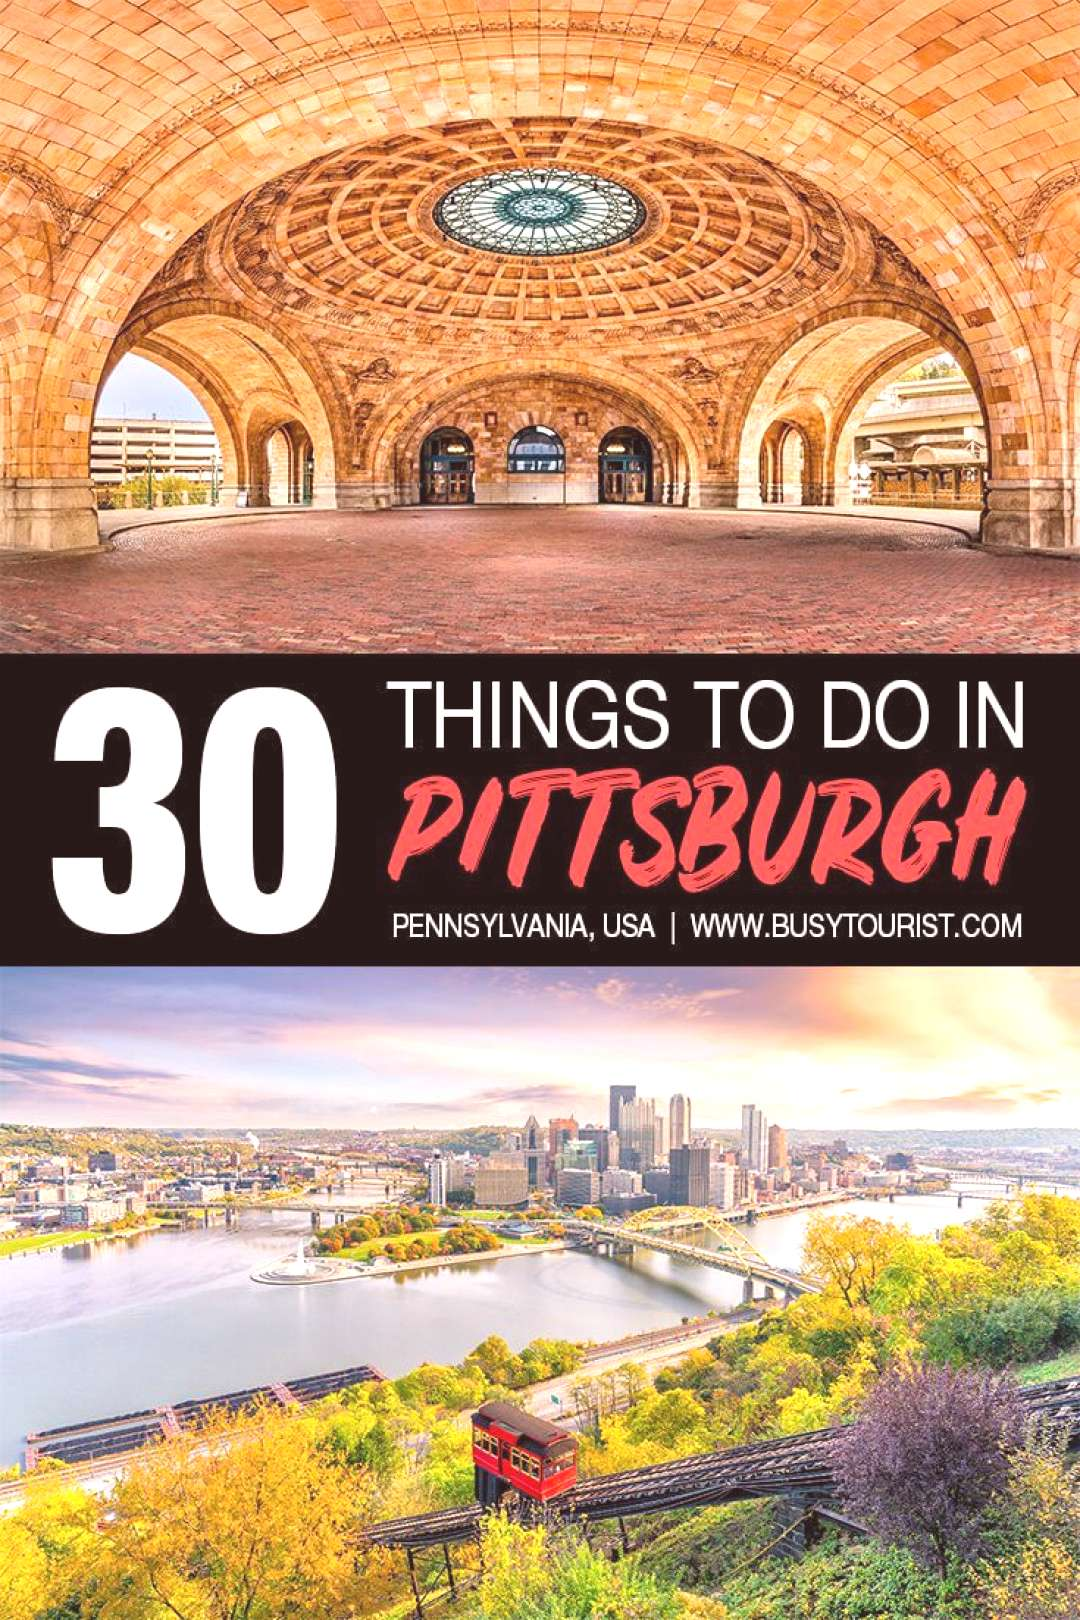 30 Best amp Fun Things To Do In Pittsburgh (Pennsylvania) Wondering what to do in Pittsburgh, PA? Thi